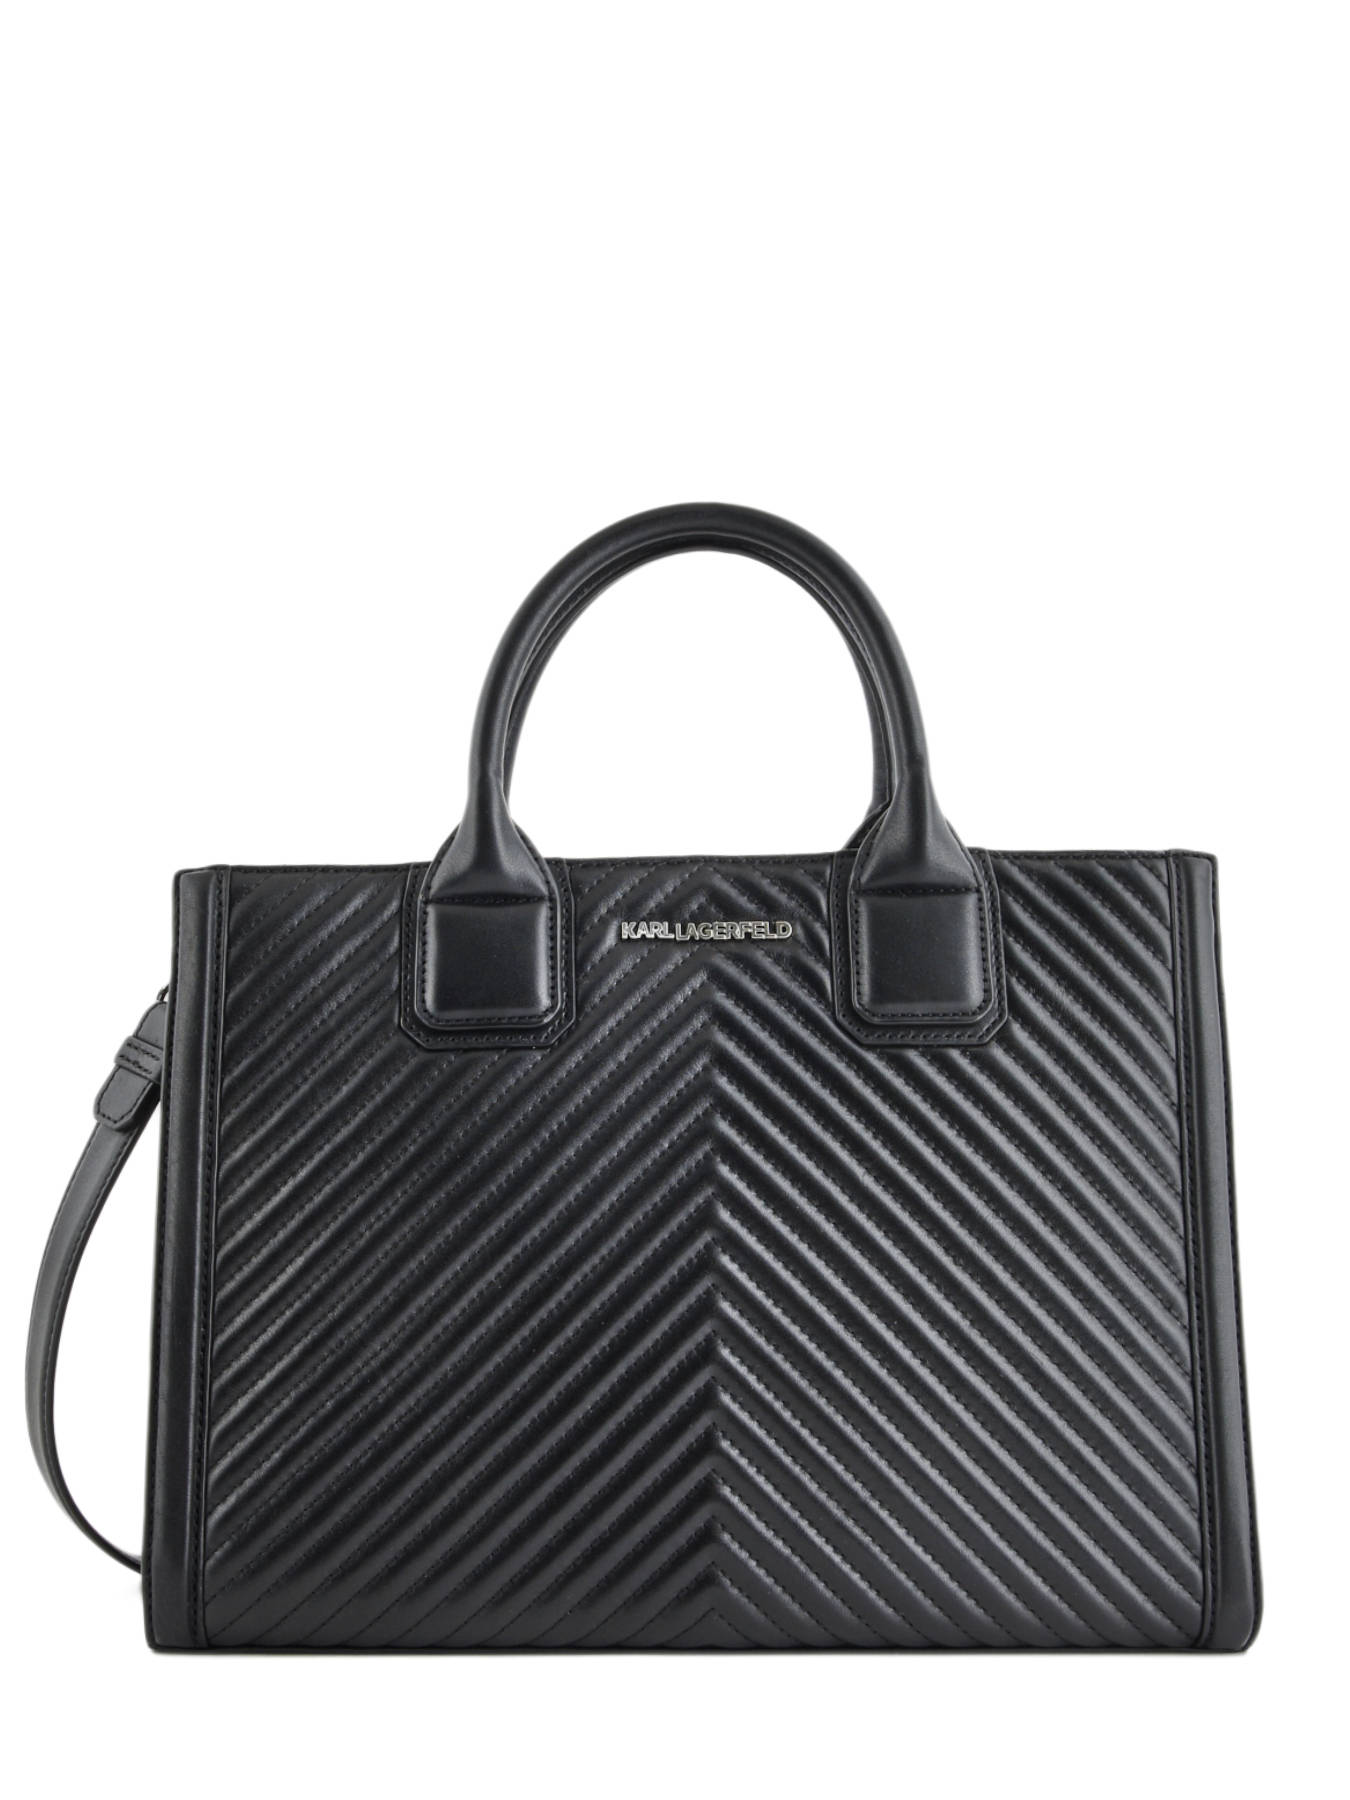 2113f3ea2b69 ... Shopping Bag Klassik Quilted Leather Karl lagerfeld Black klassic  quilted 91KW3121 ...